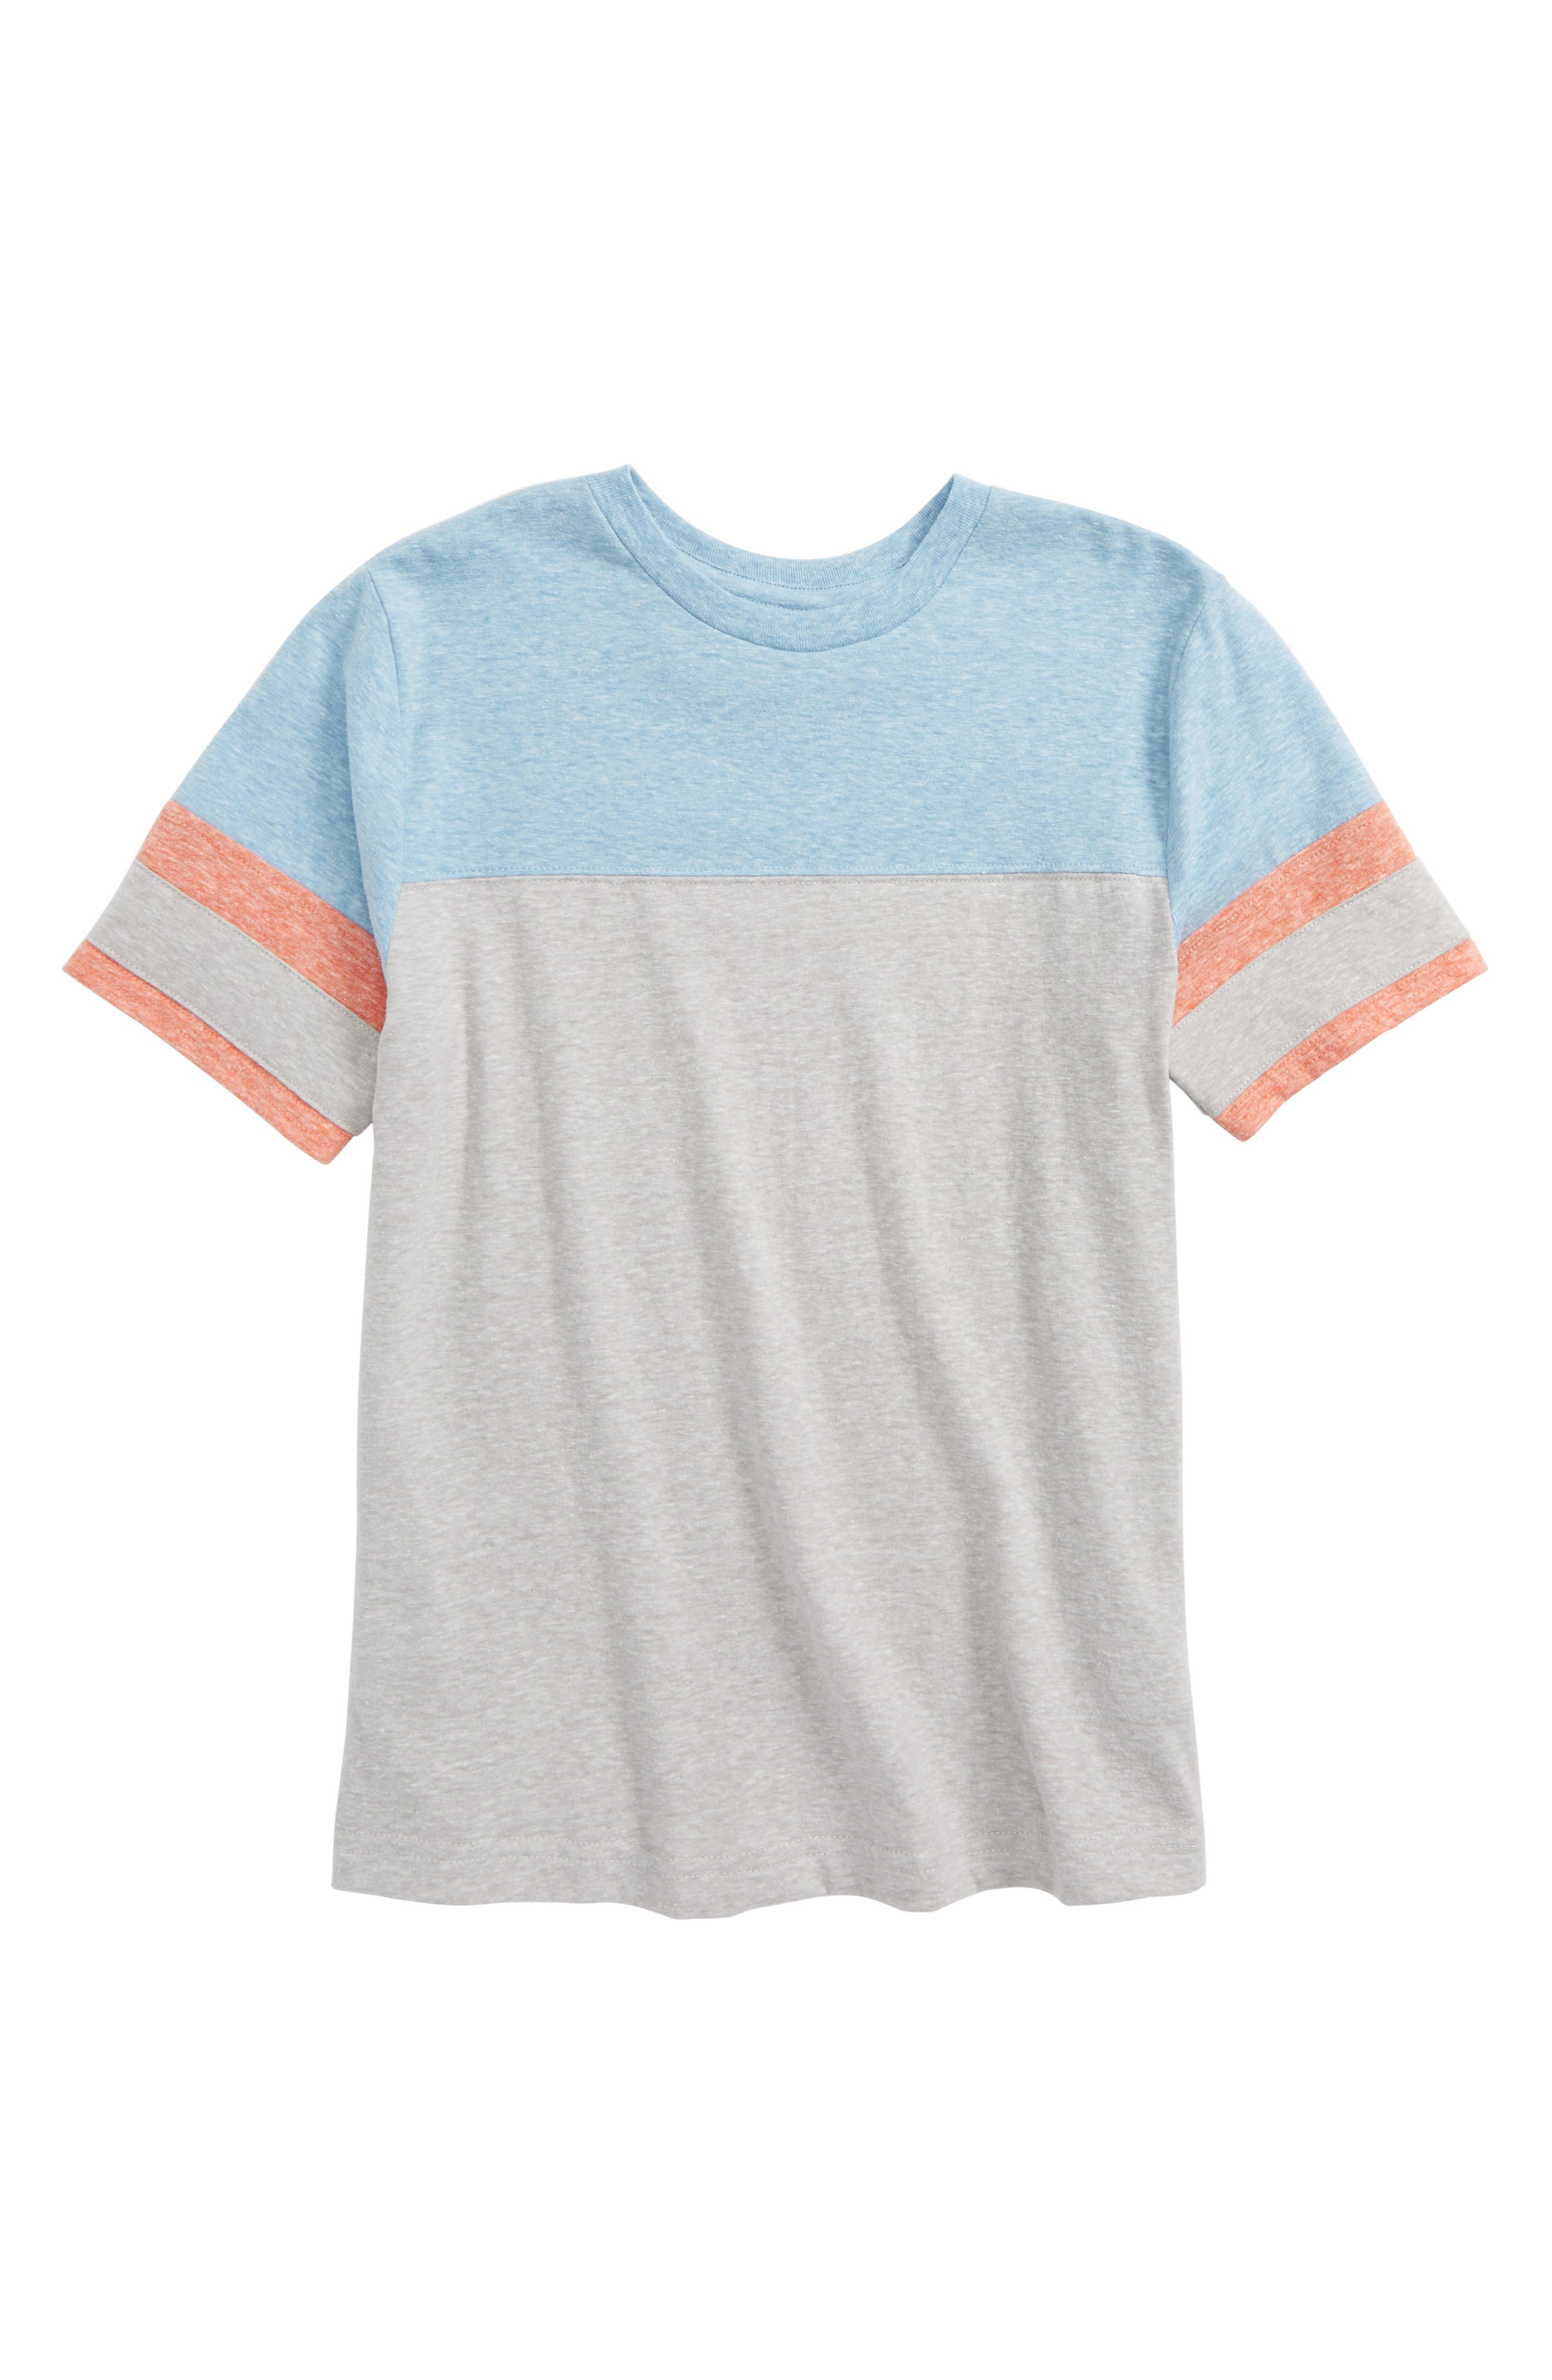 TUCKER + TATE Colorblock T-Shirt, Main, color, 050